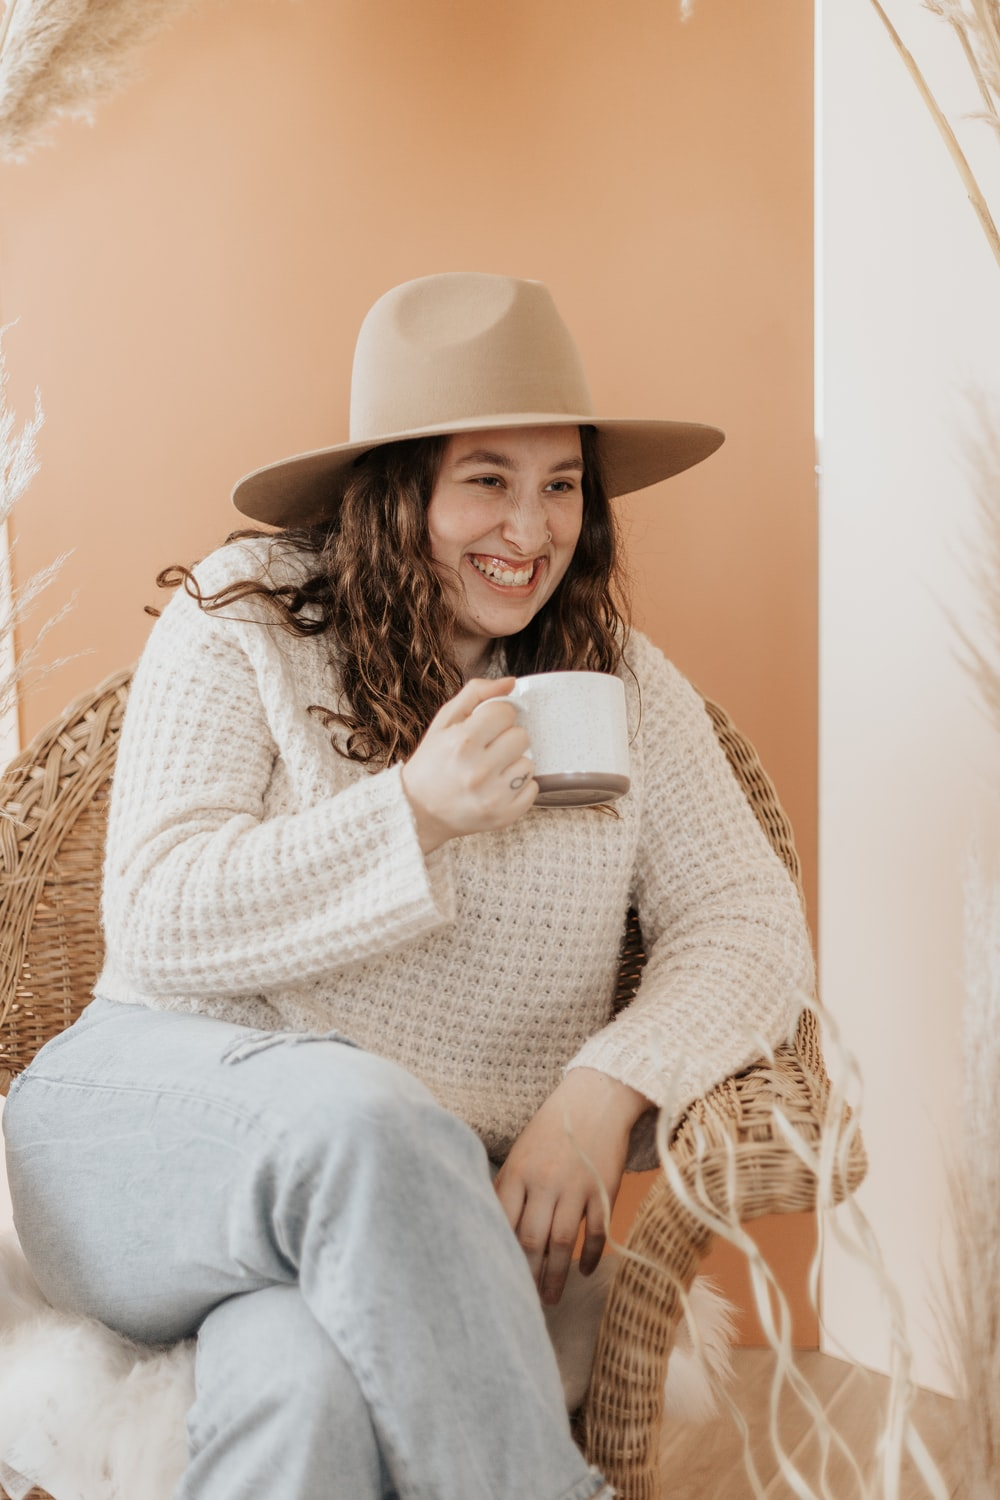 woman in white knit sweater and gray pants holding white ceramic mug